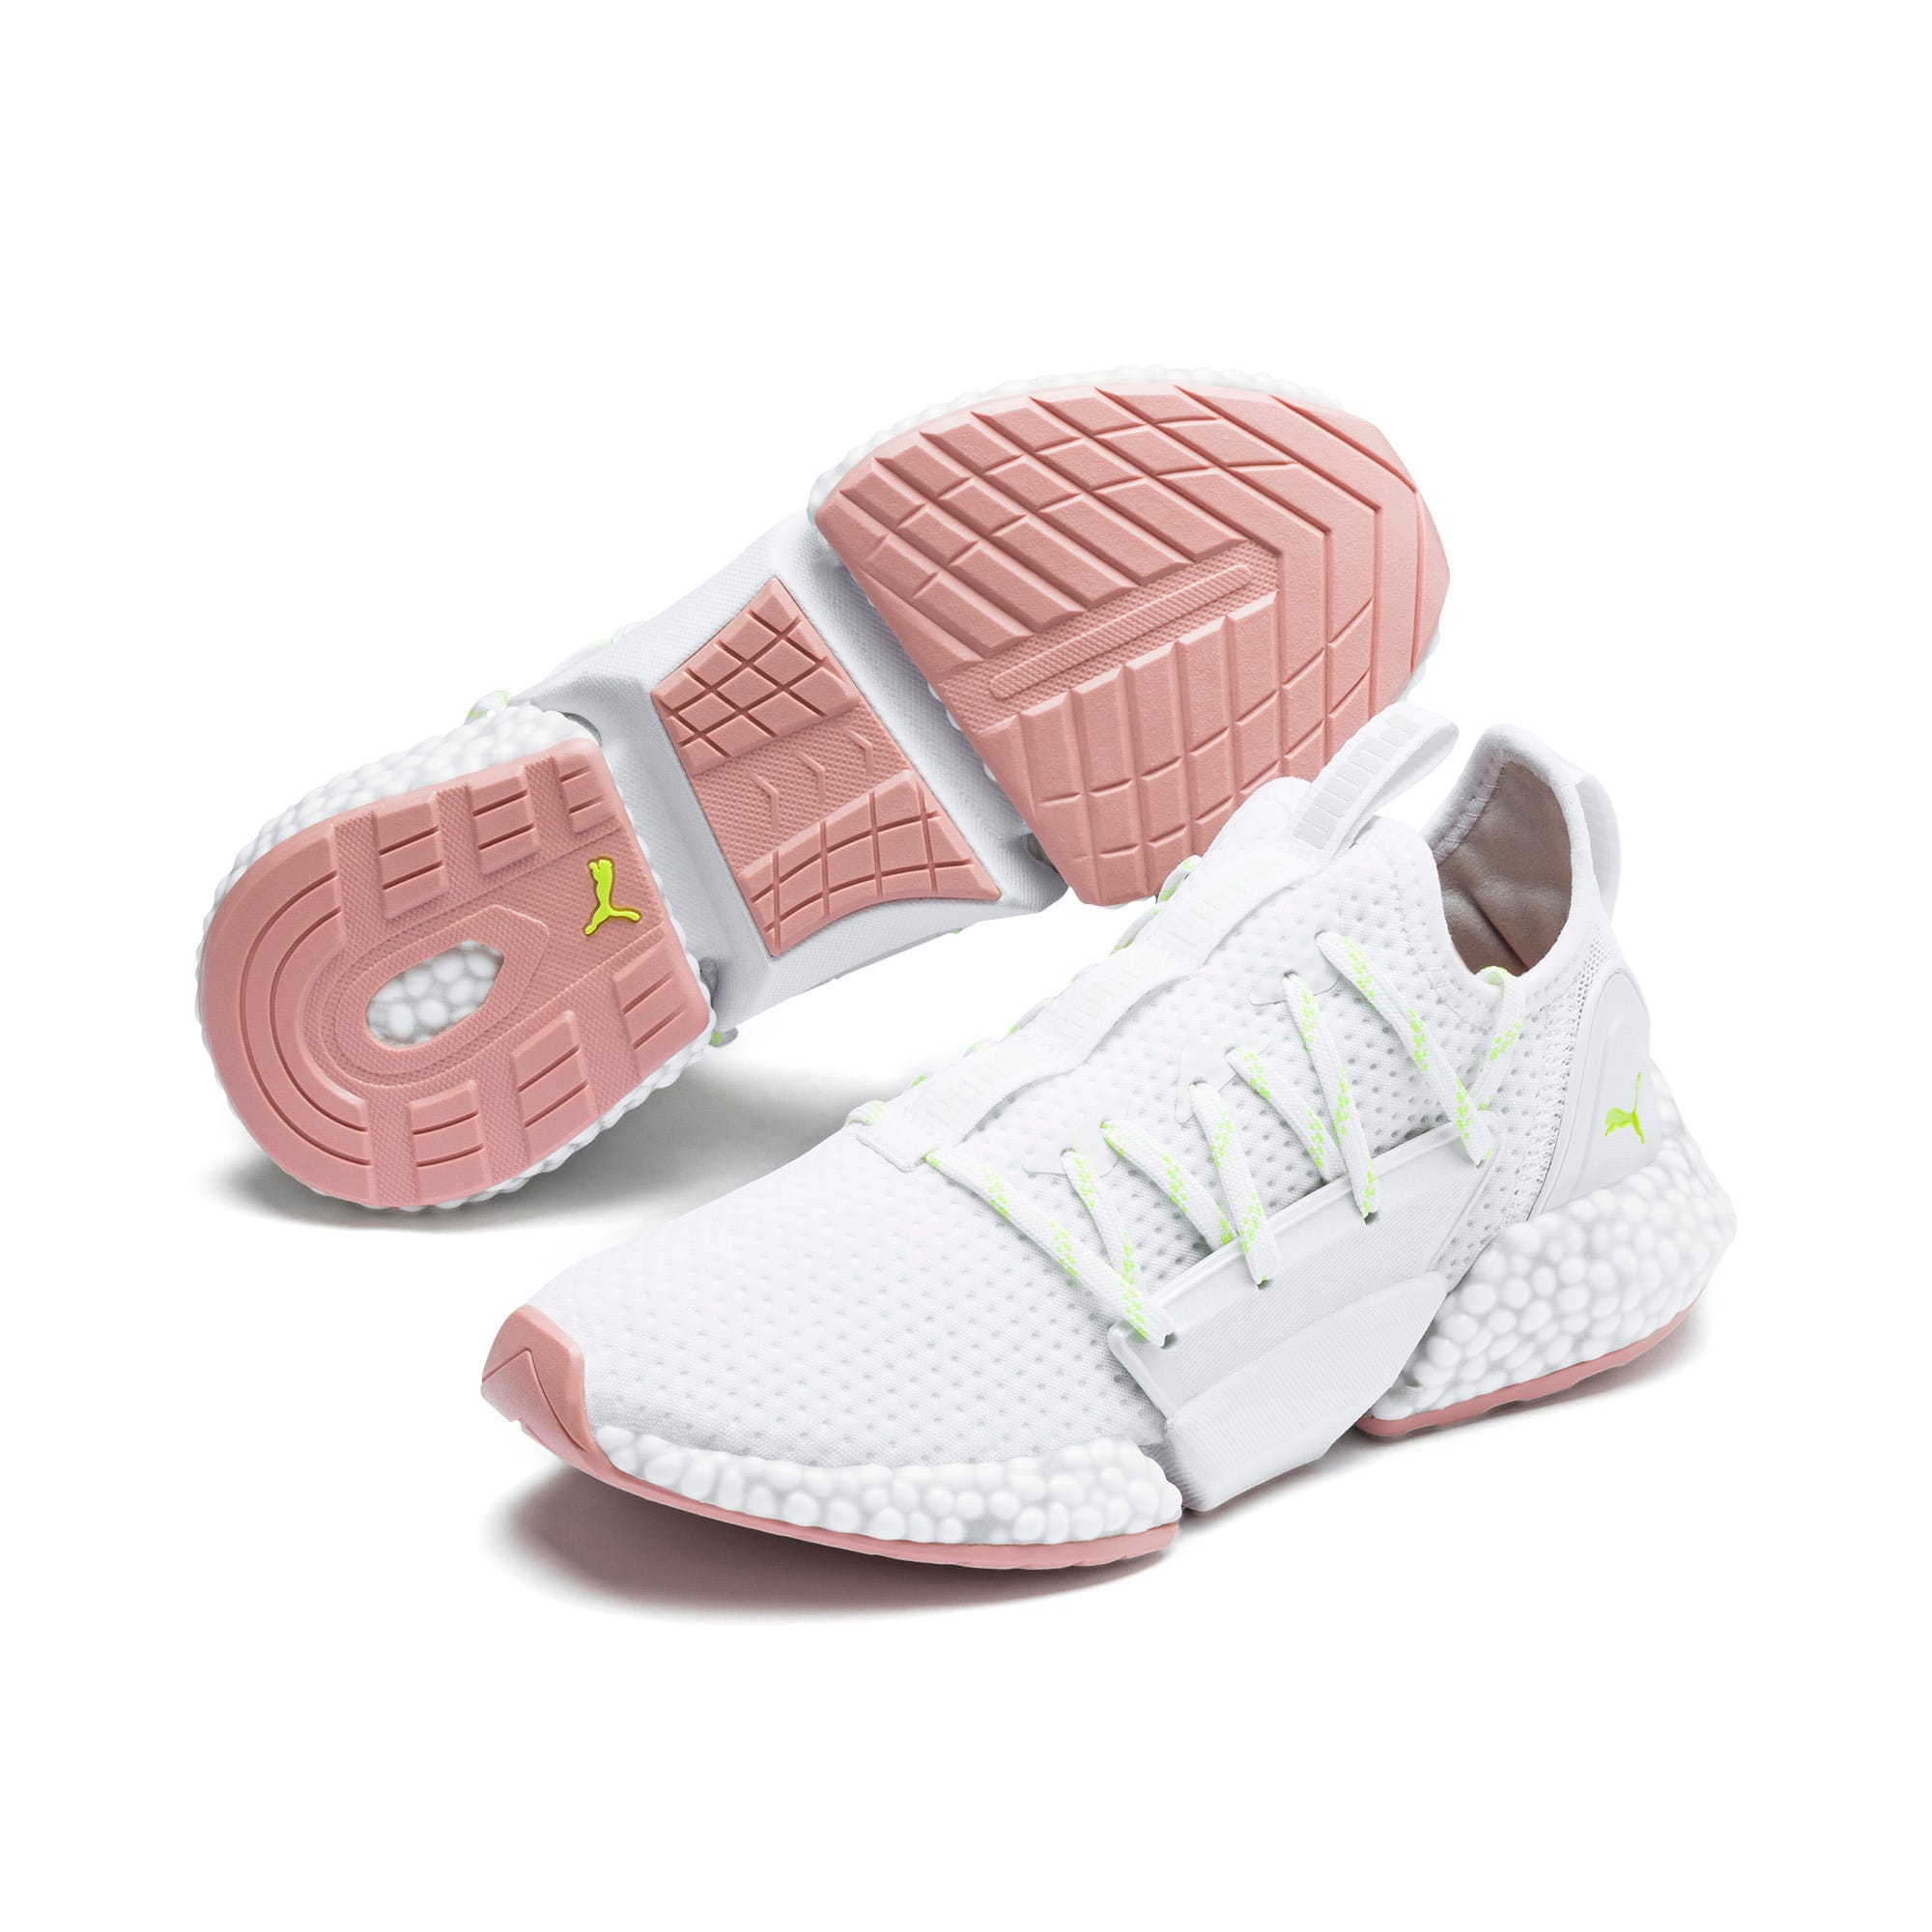 Thumbnail 2 of HYBRID Rocket Aero Women's Running Shoes, Puma White-Bridal Rose, medium